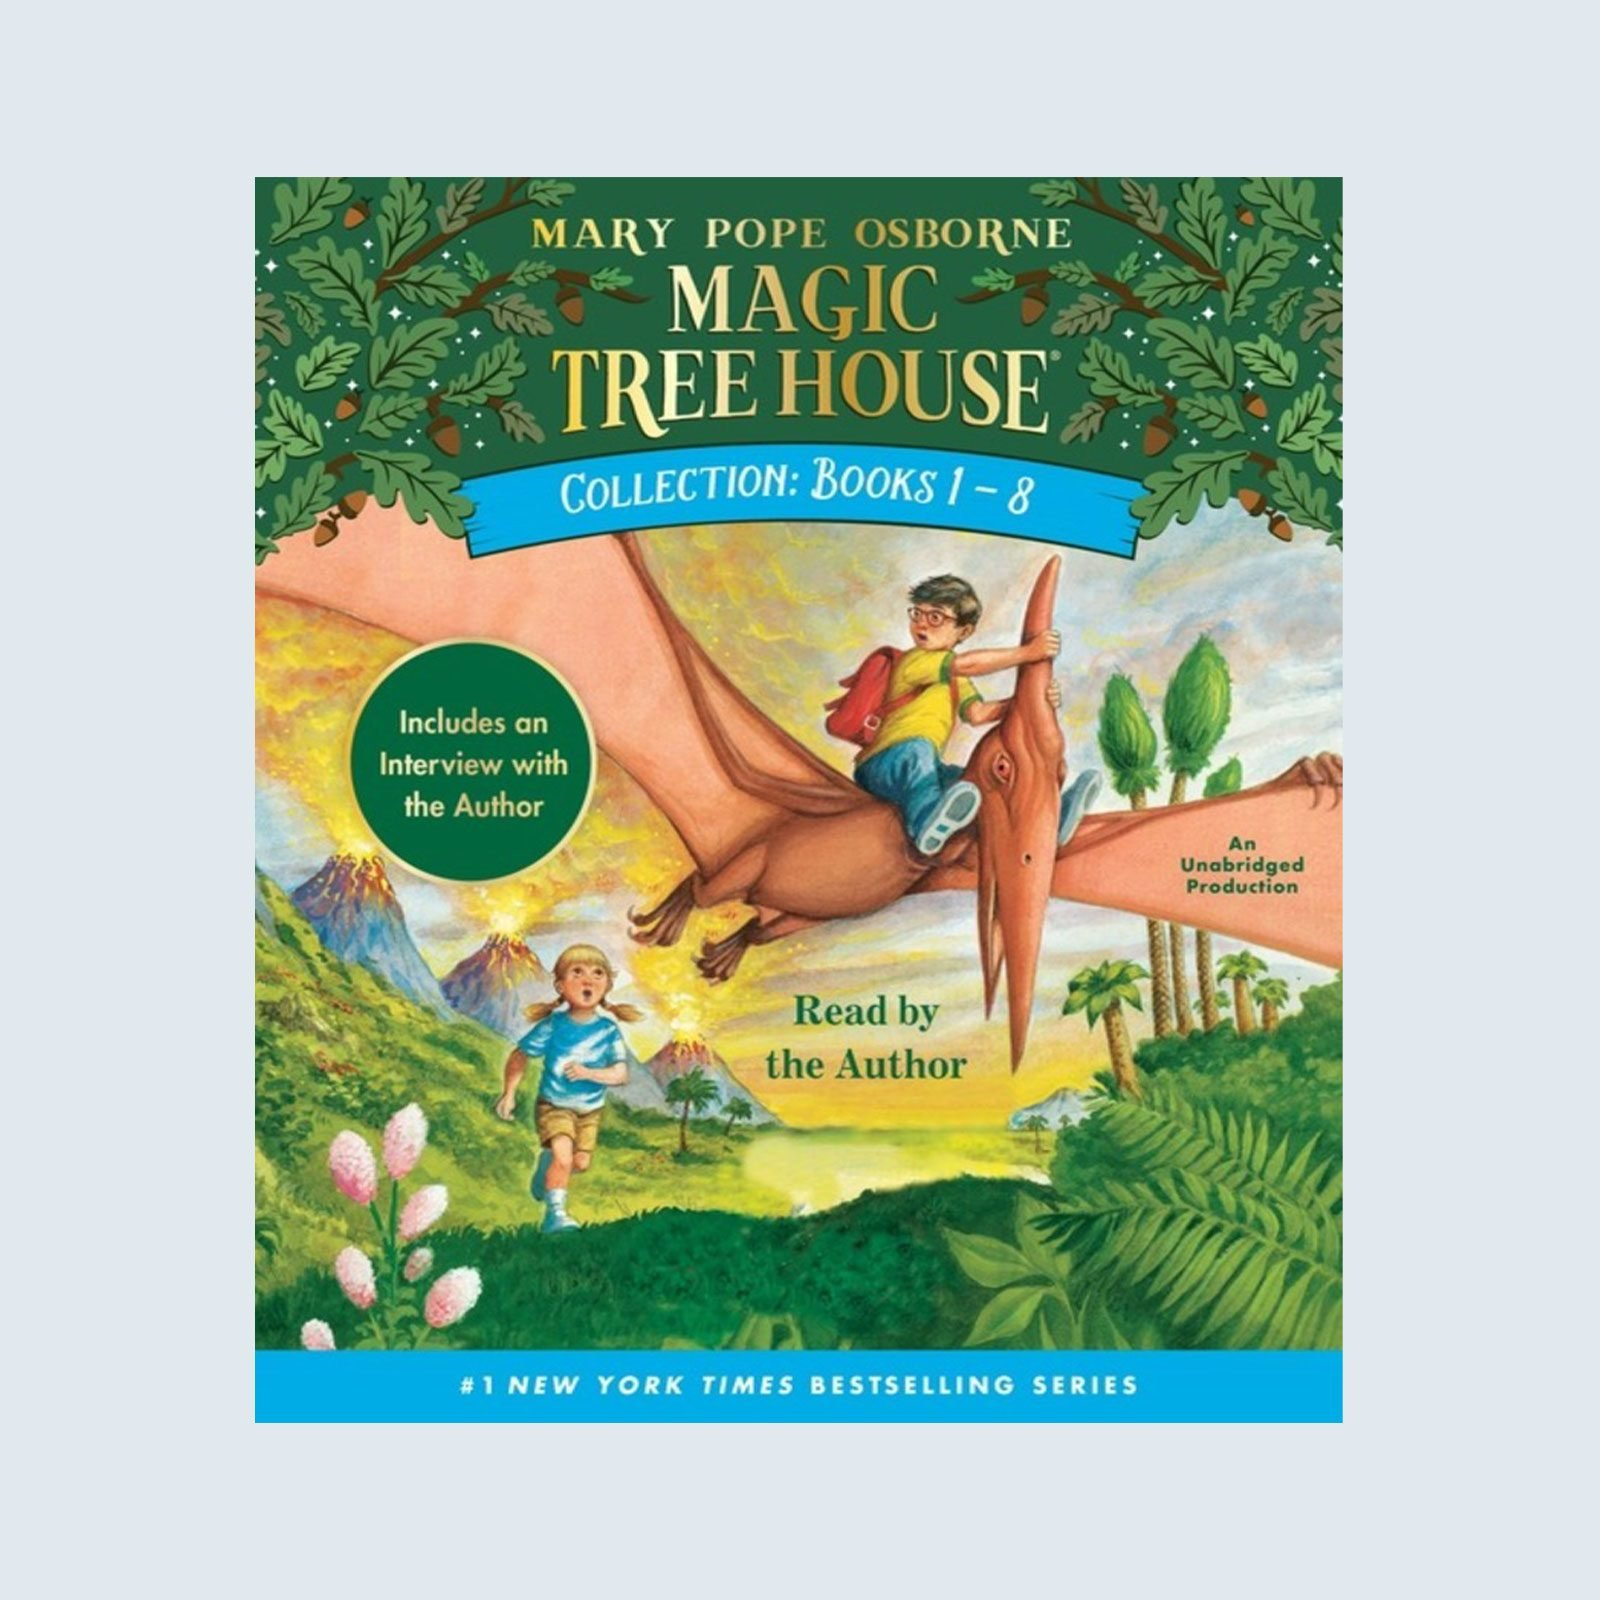 The Magic Tree House Collection, Books 1 - 8